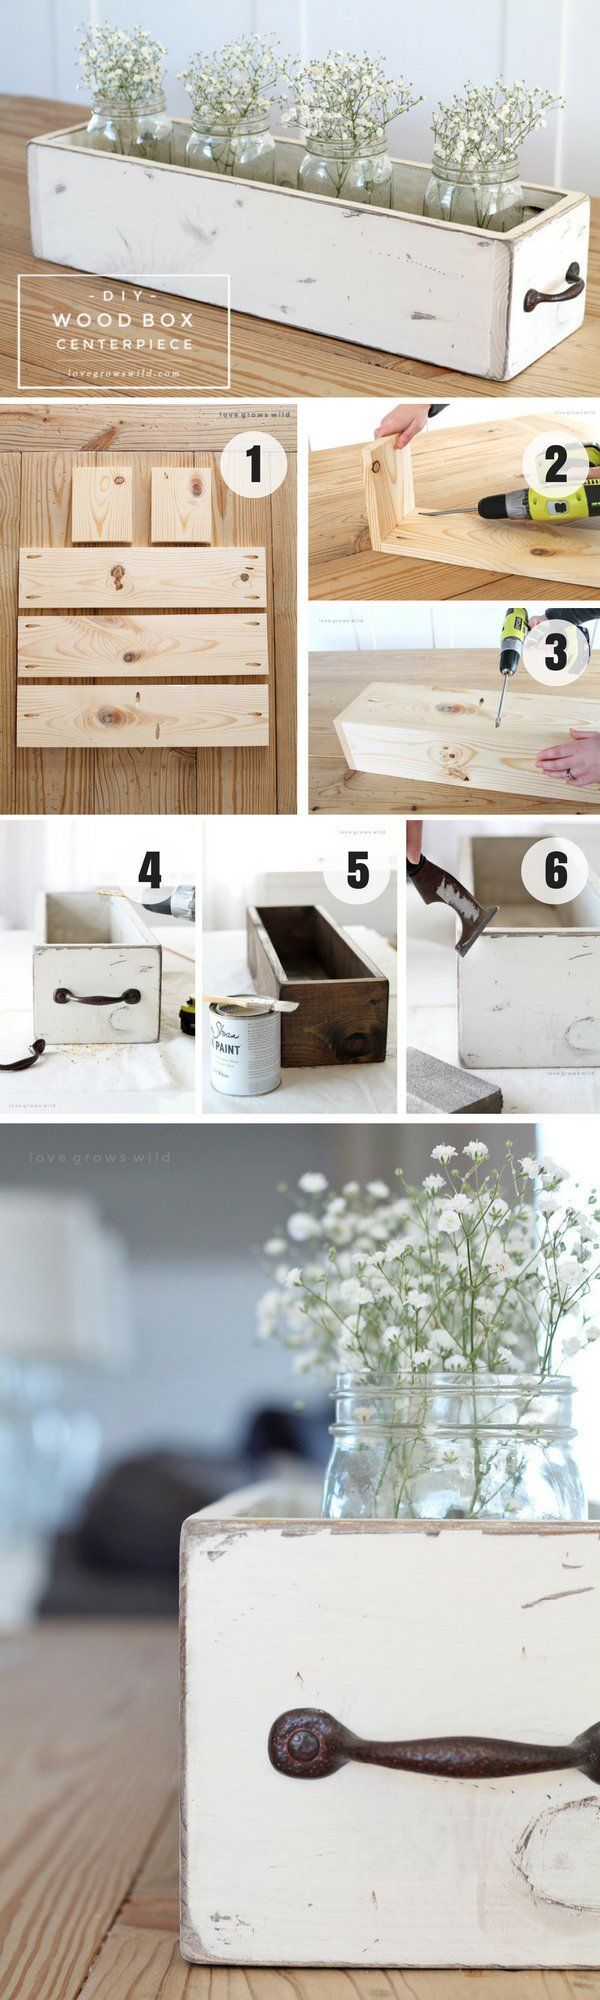 Table success do it yourself home projects from ana white diy 85 - Check Out How To Build An Easy Diy Wood Box Centerpiece Istandarddesign